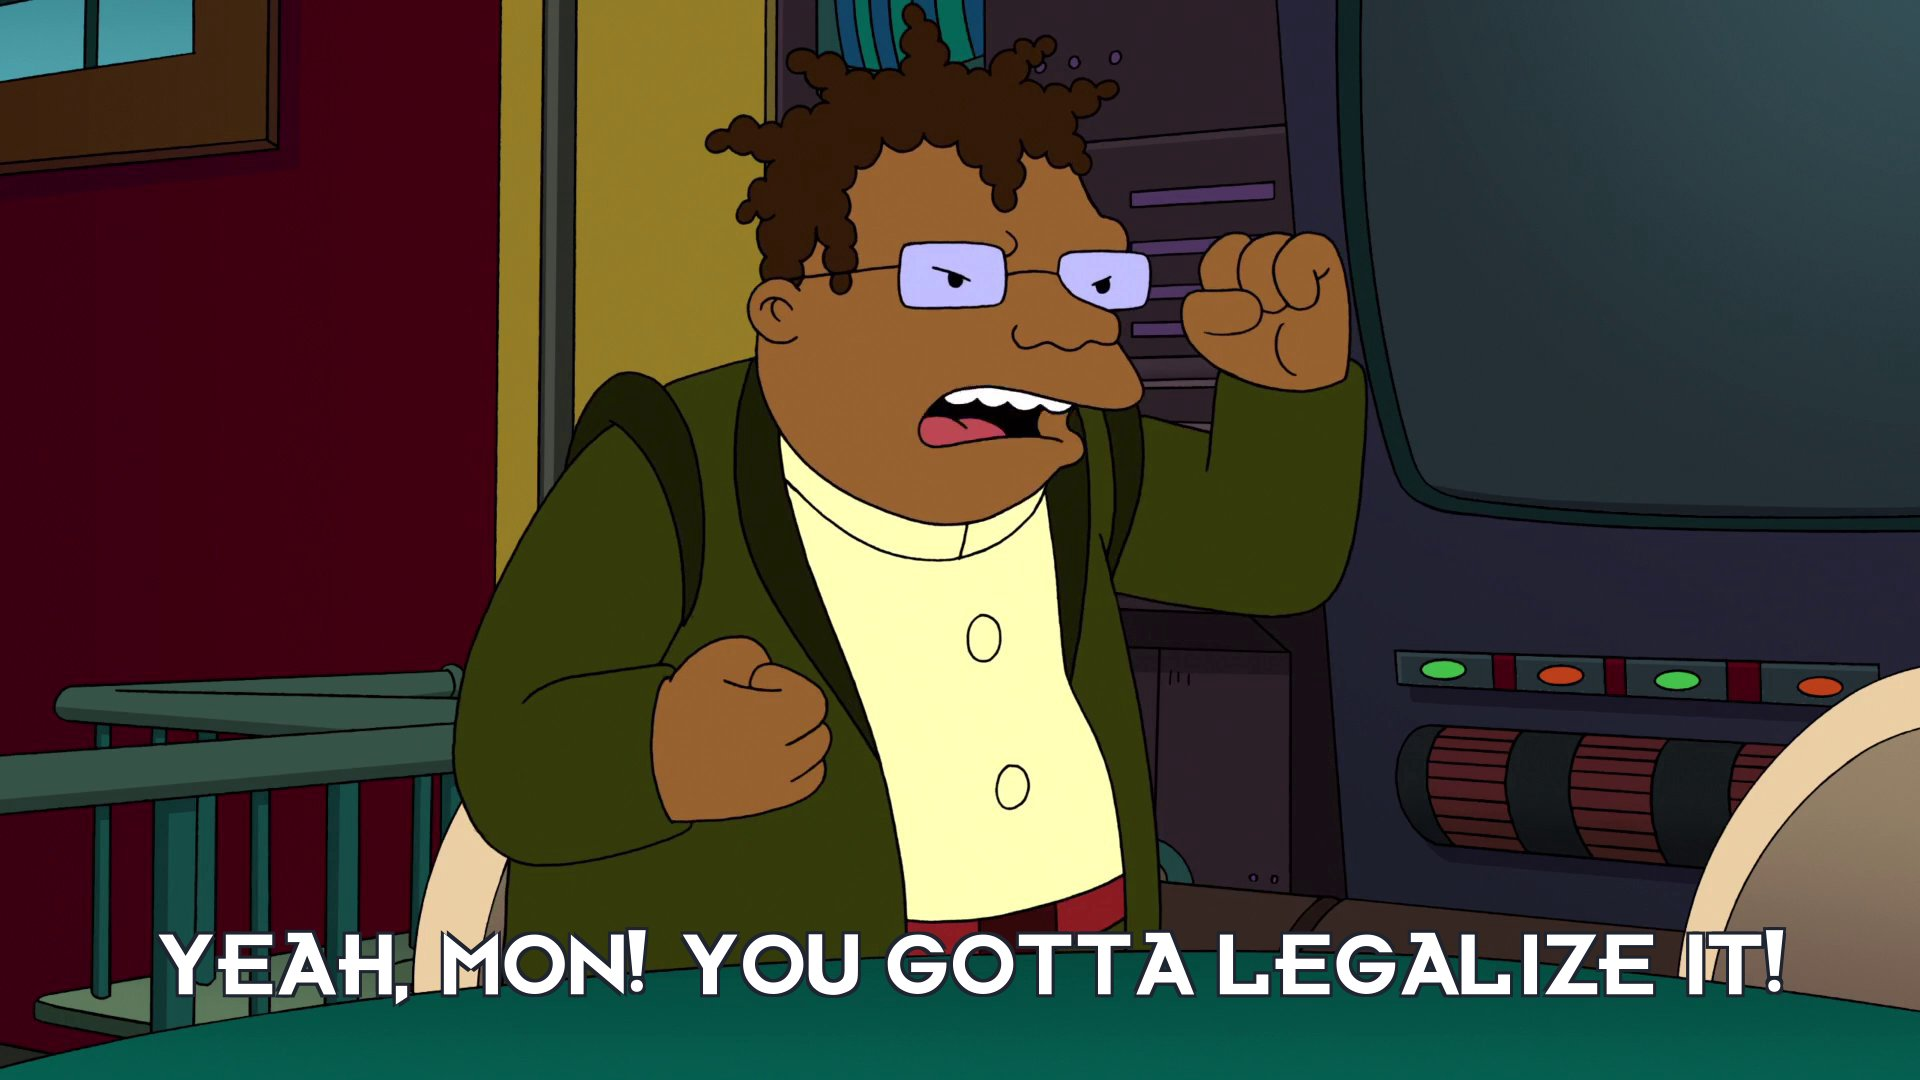 Hermes Conrad: Yeah, mon! You gotta legalize it!